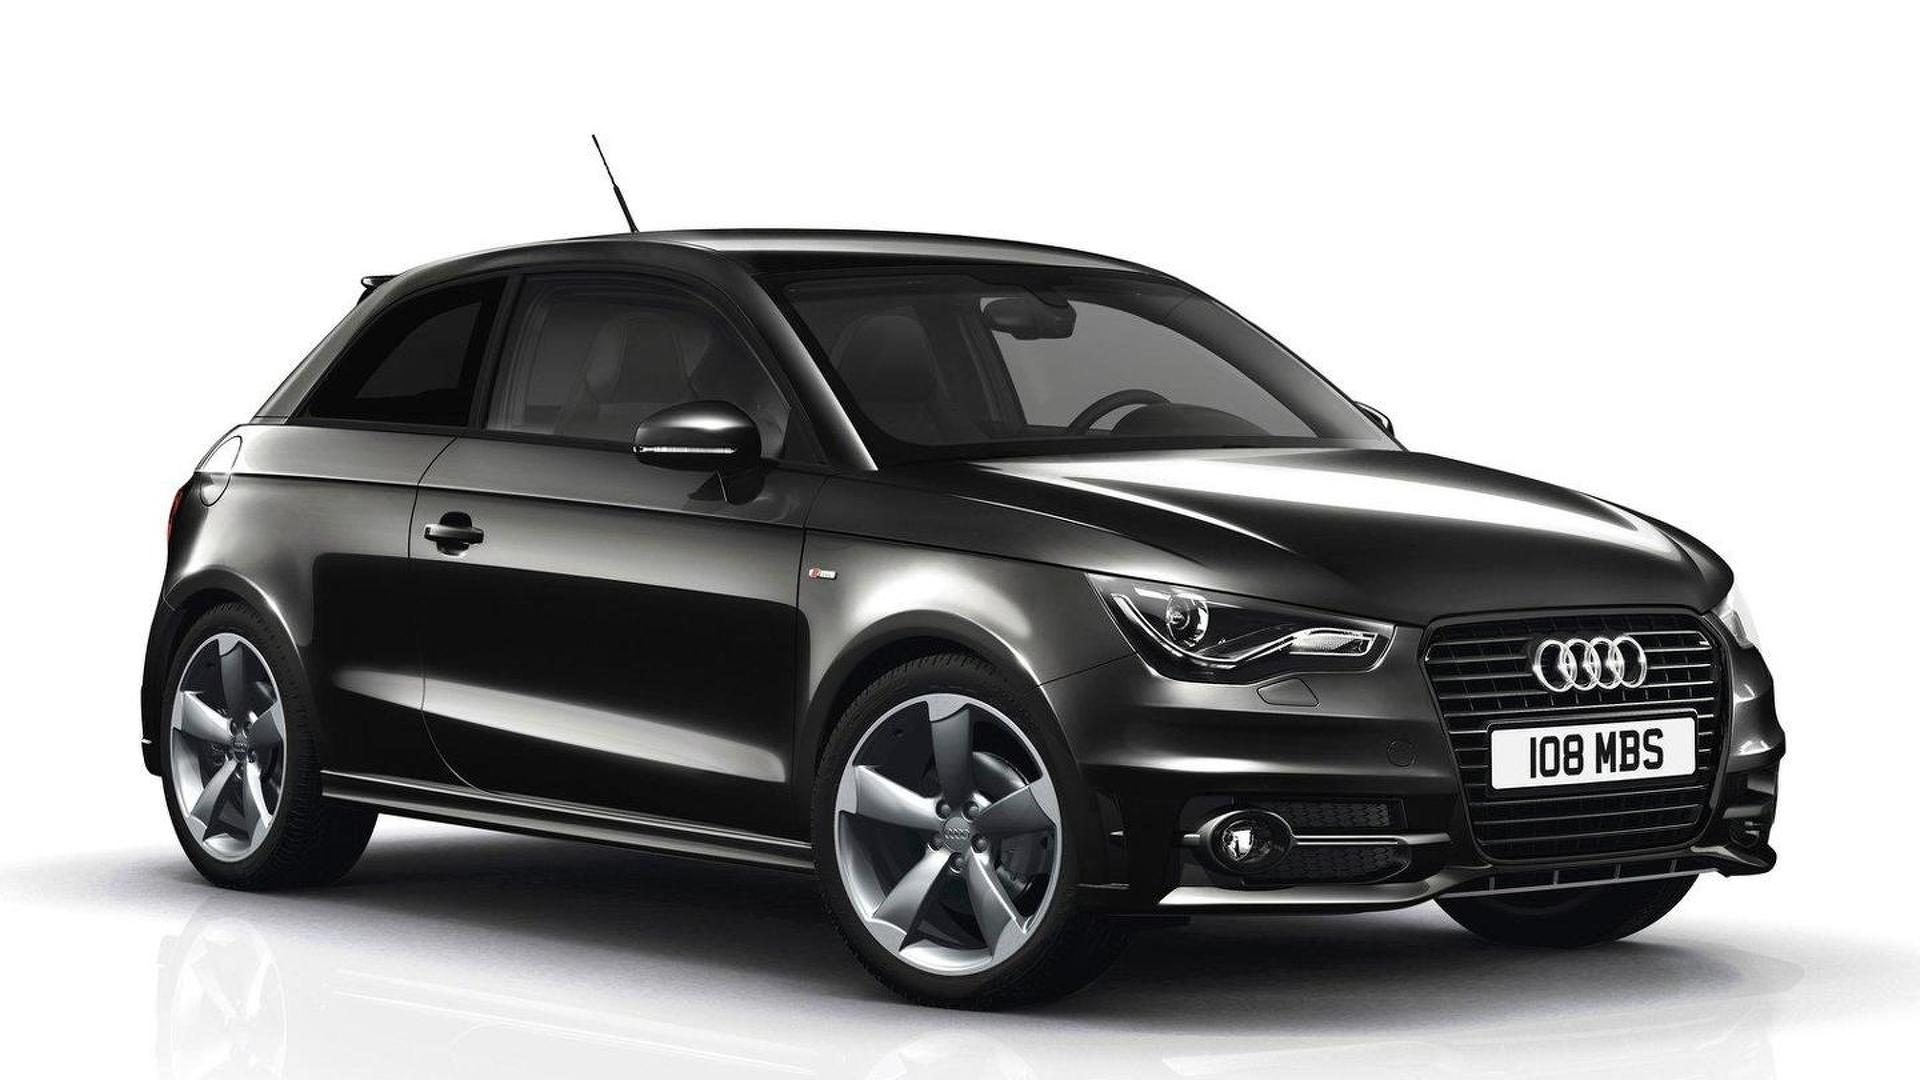 Audi A1 Black and Contrast Editions (U.K.)